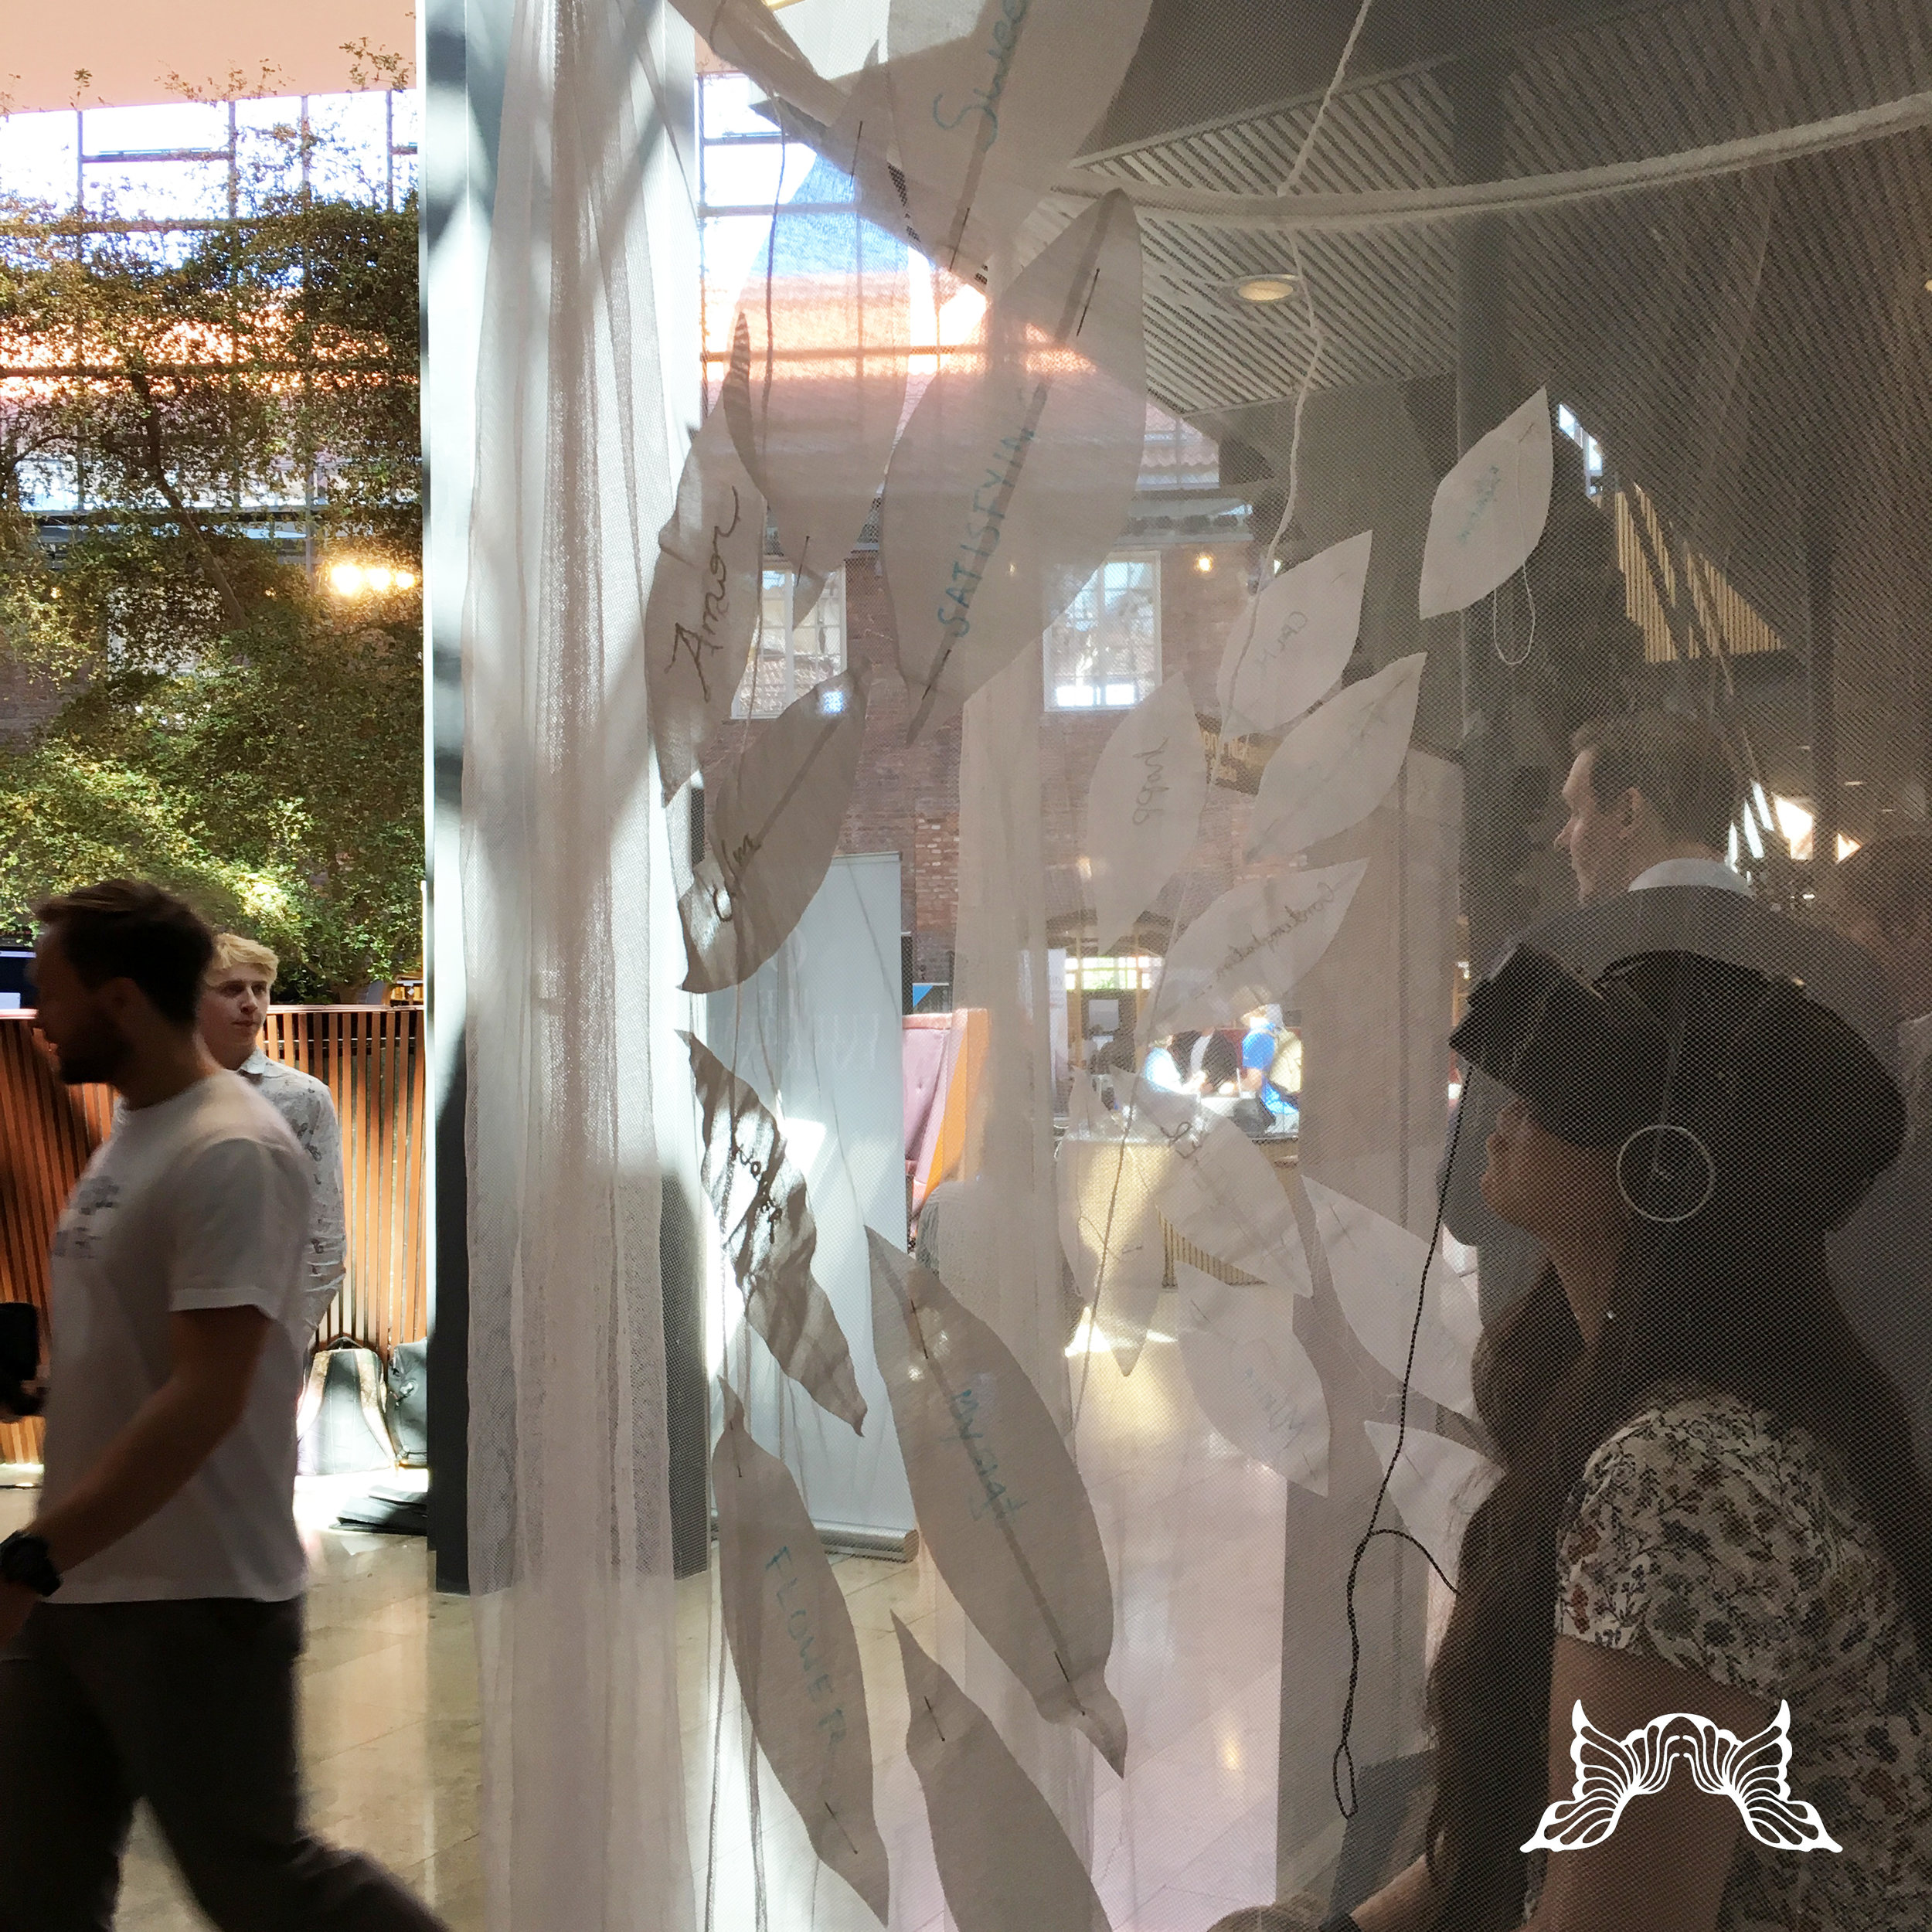 The Garden of Thoughts (small version) at VR Sci Fest, KTH (Royal Institute of Technology), Stockholm, May 18th, 2018. © Pernilla Belfrage